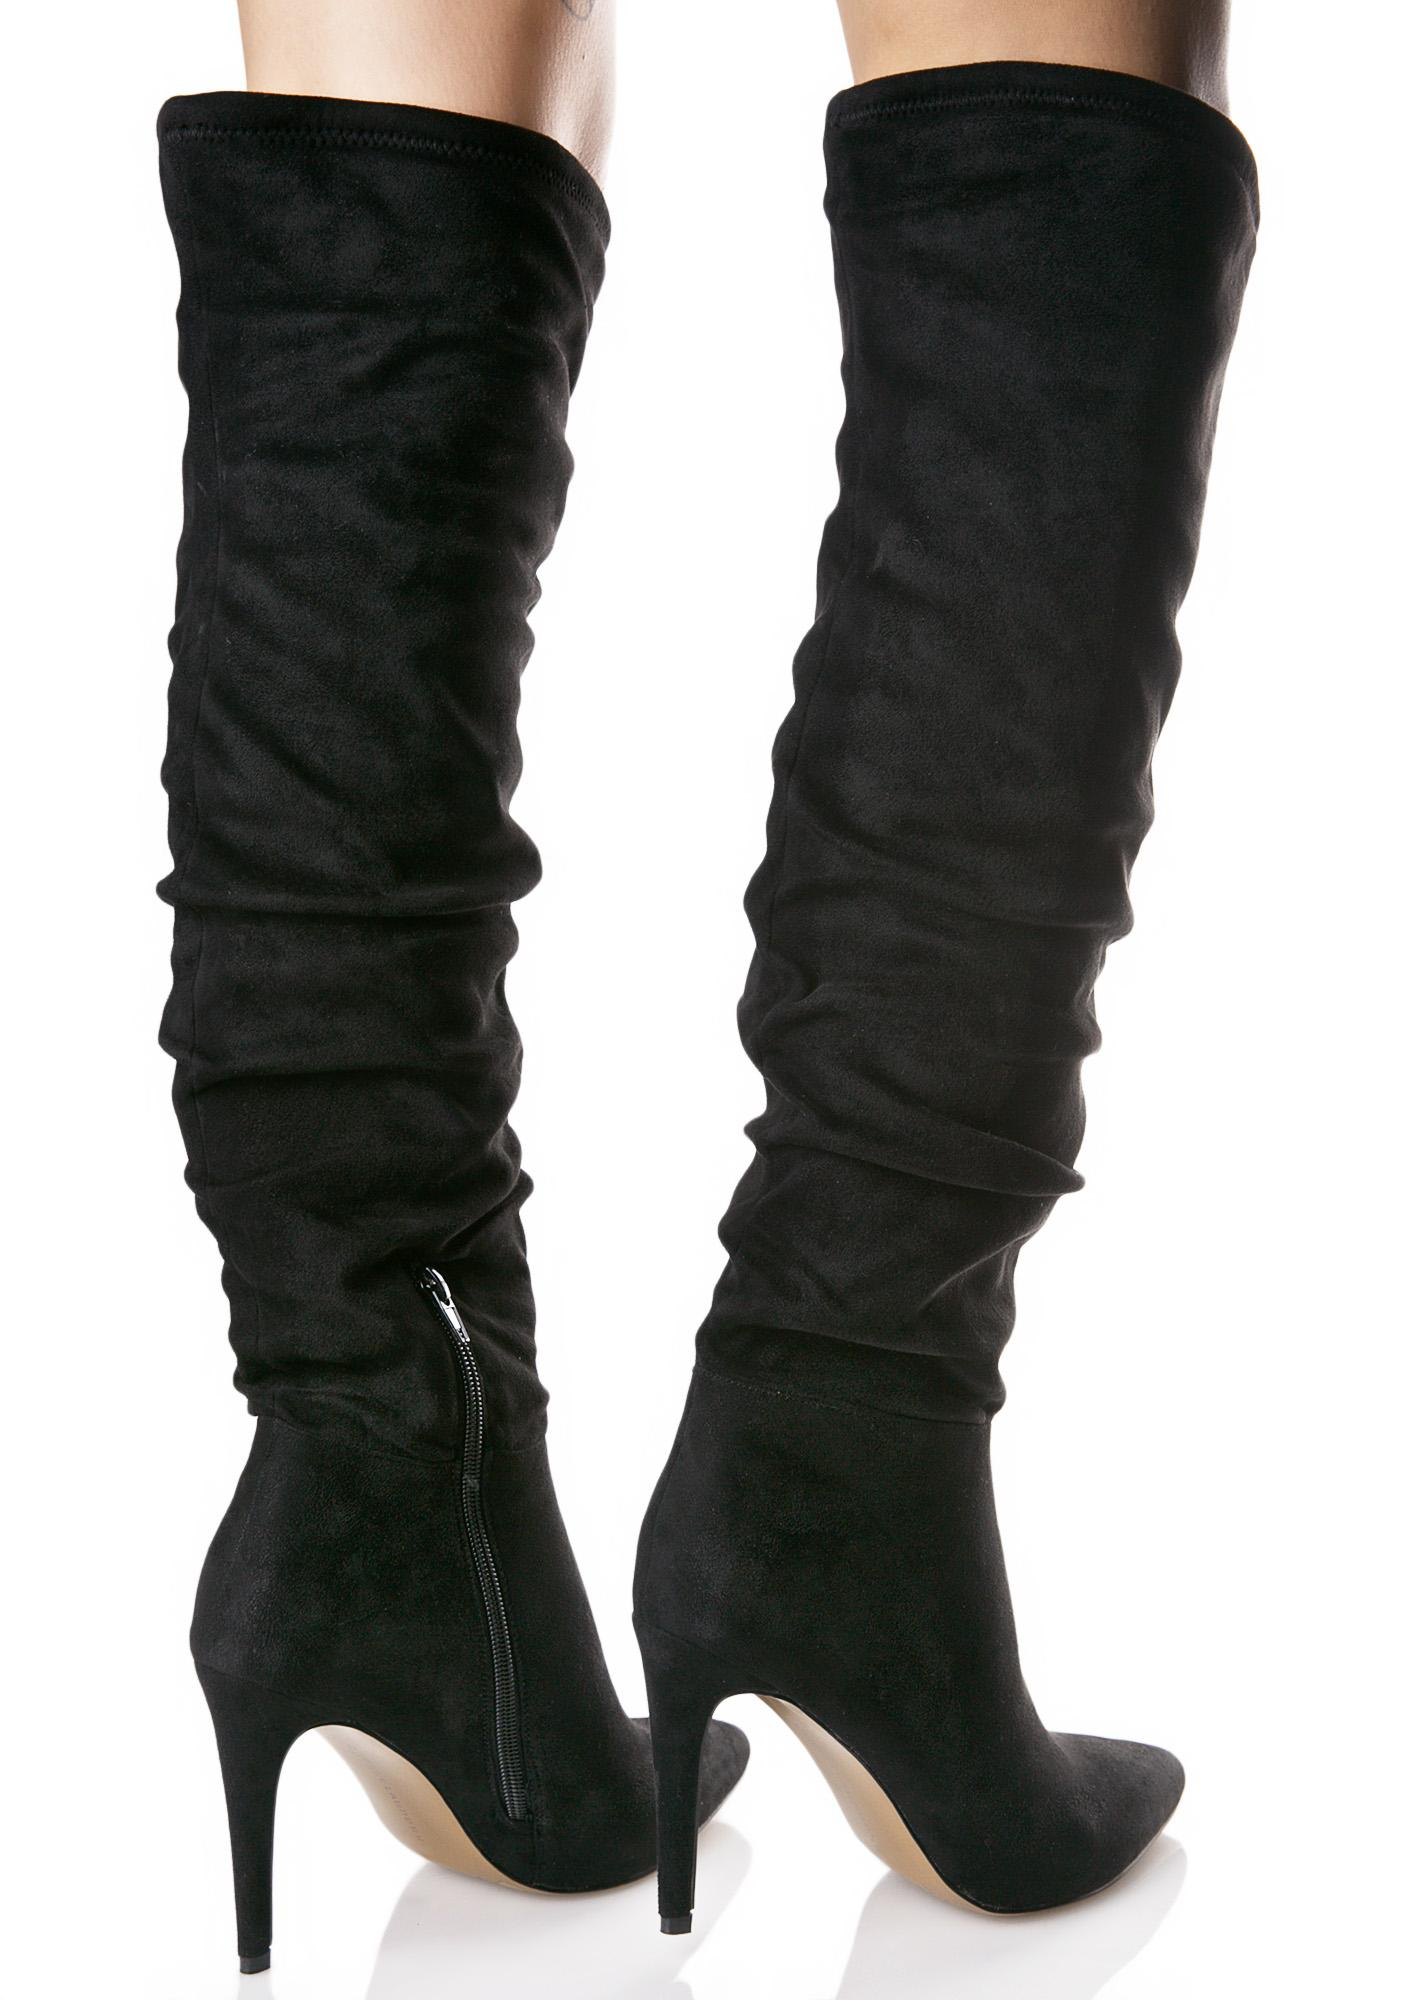 Chinese Laundry Claudette Knee High Boots